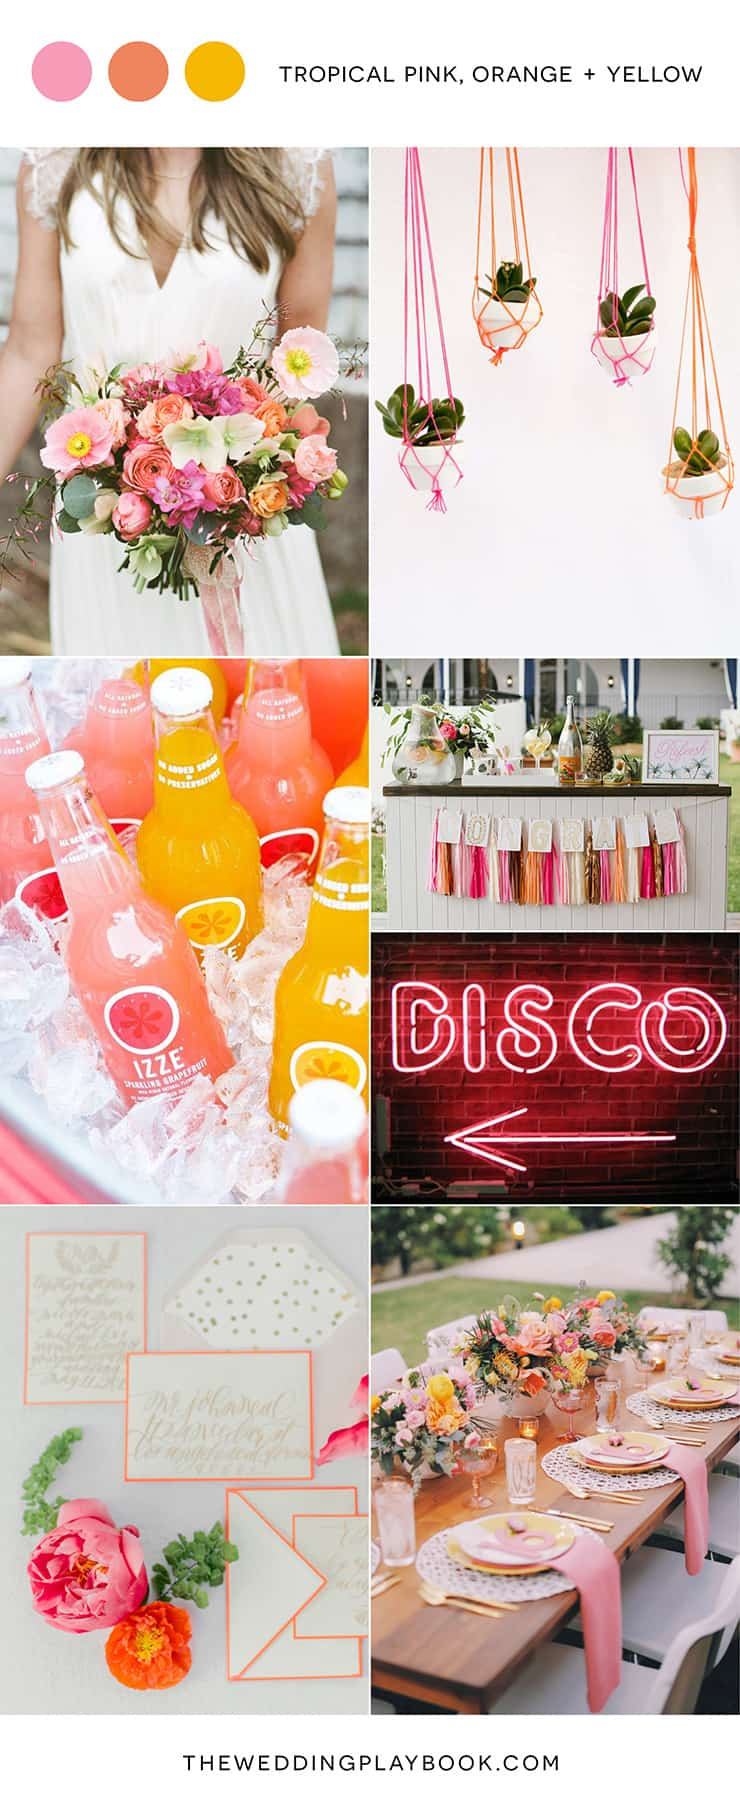 Bright tropical wedding inspiration in pink, orange and yellow